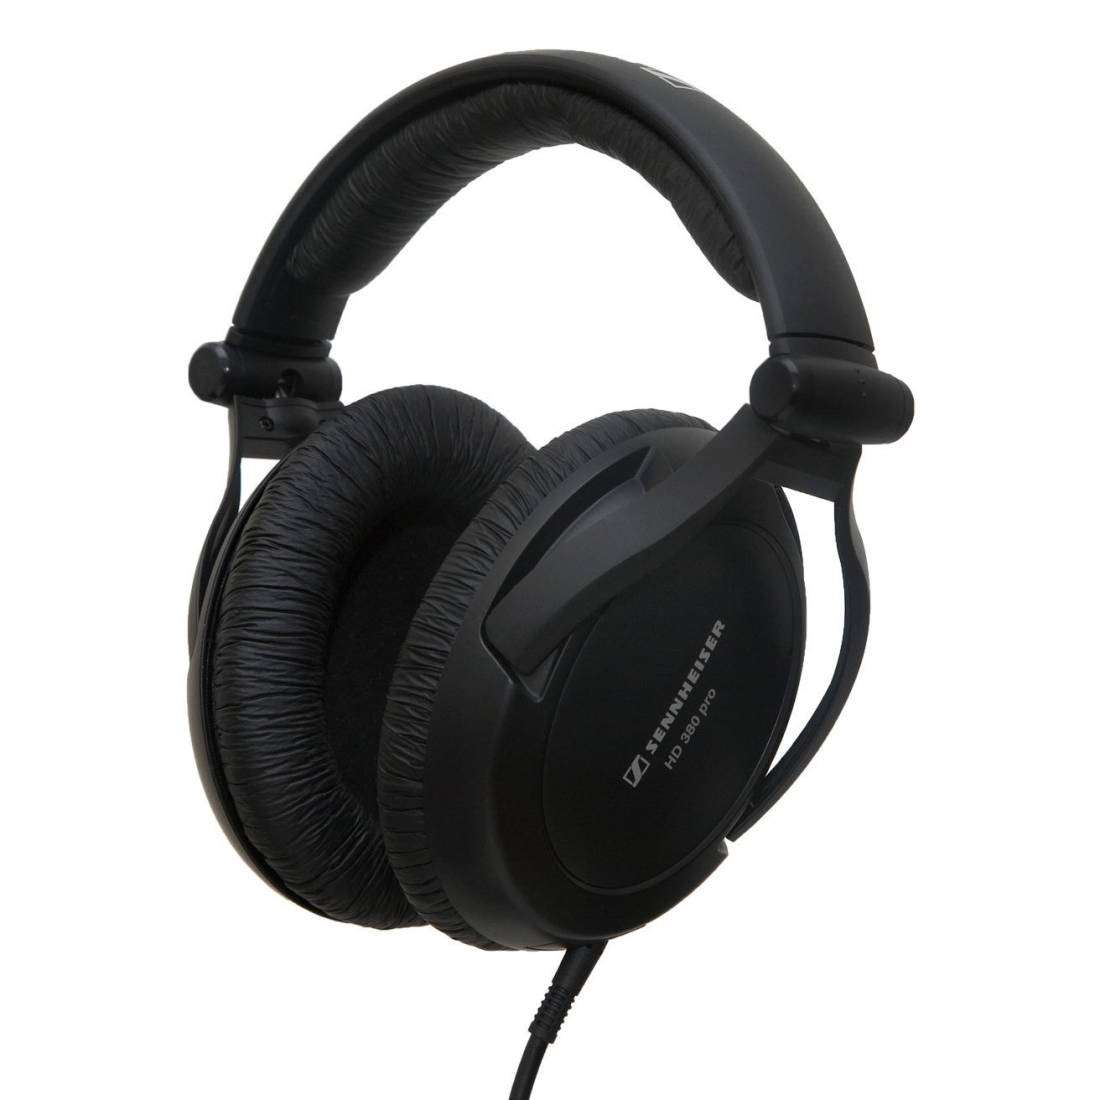 Sennheiser HD 380 PRO headphones: review, specifications and photos